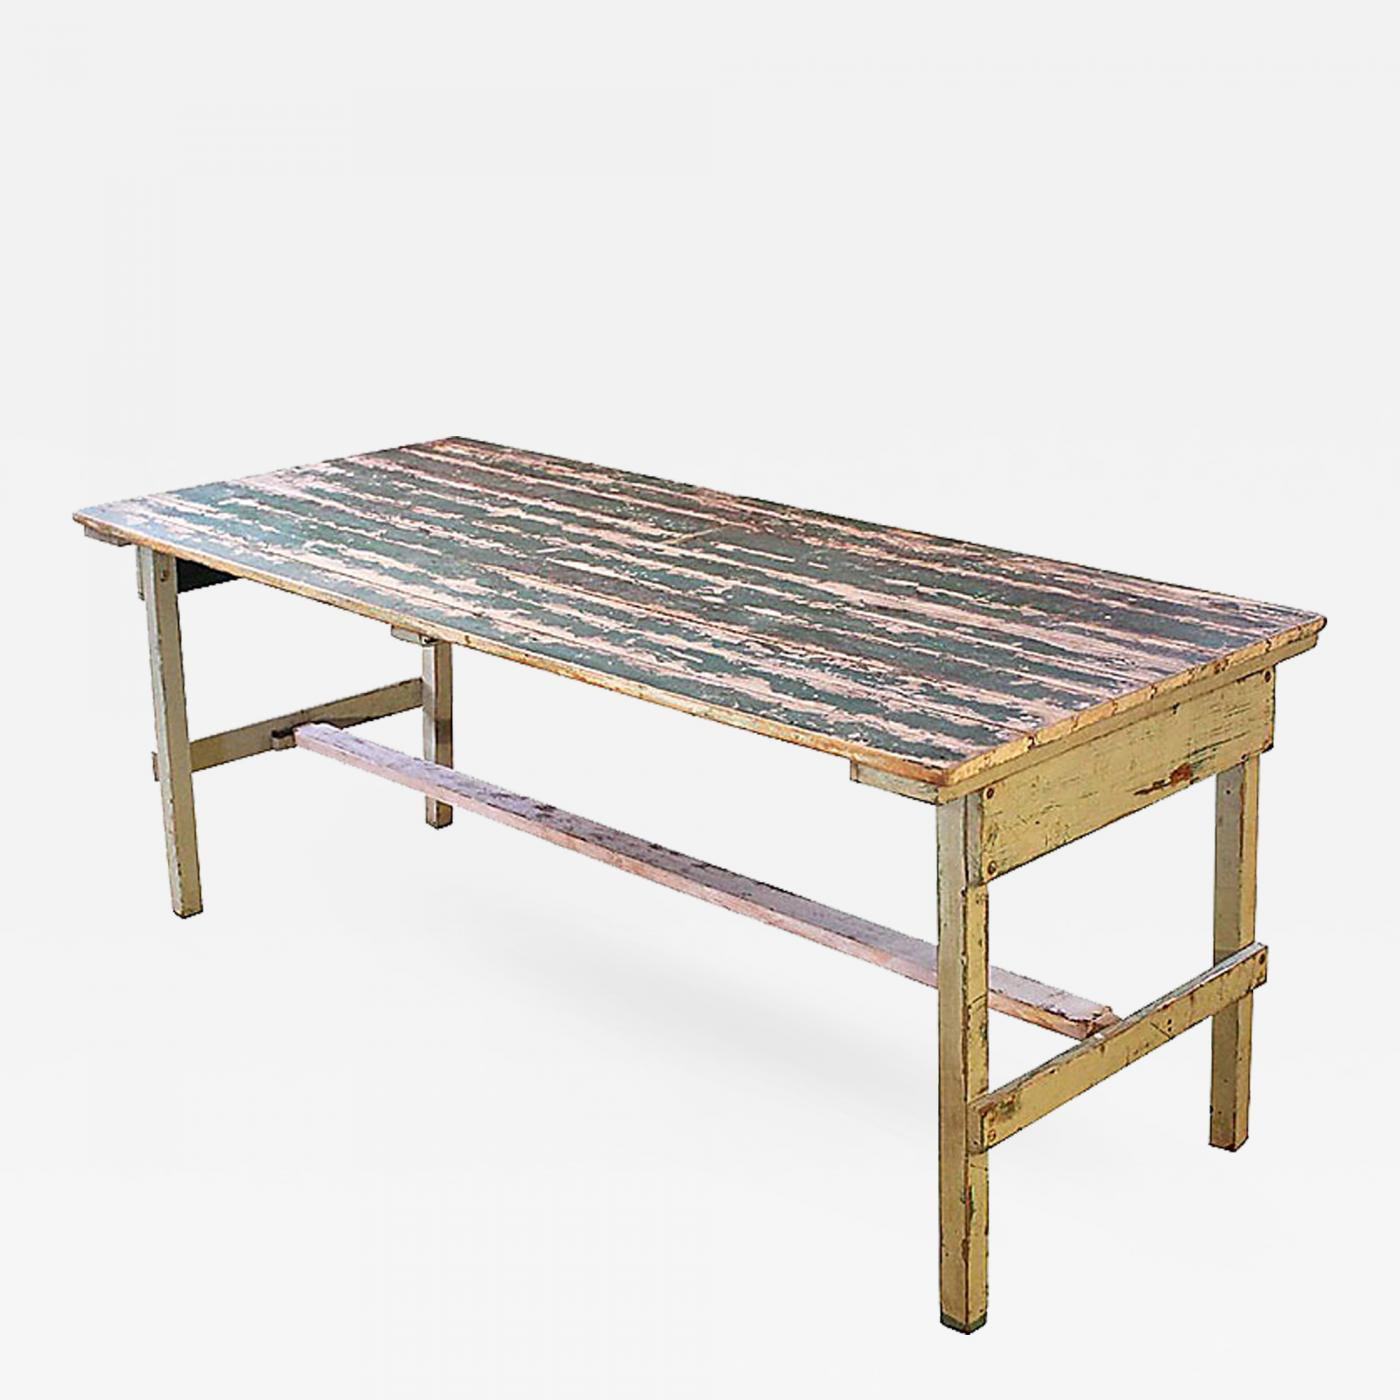 Furniture Dining And Kitchen Tables Farmhouse Industrial: Vintage Rustic Farm Distressed Folding Dining Work Table